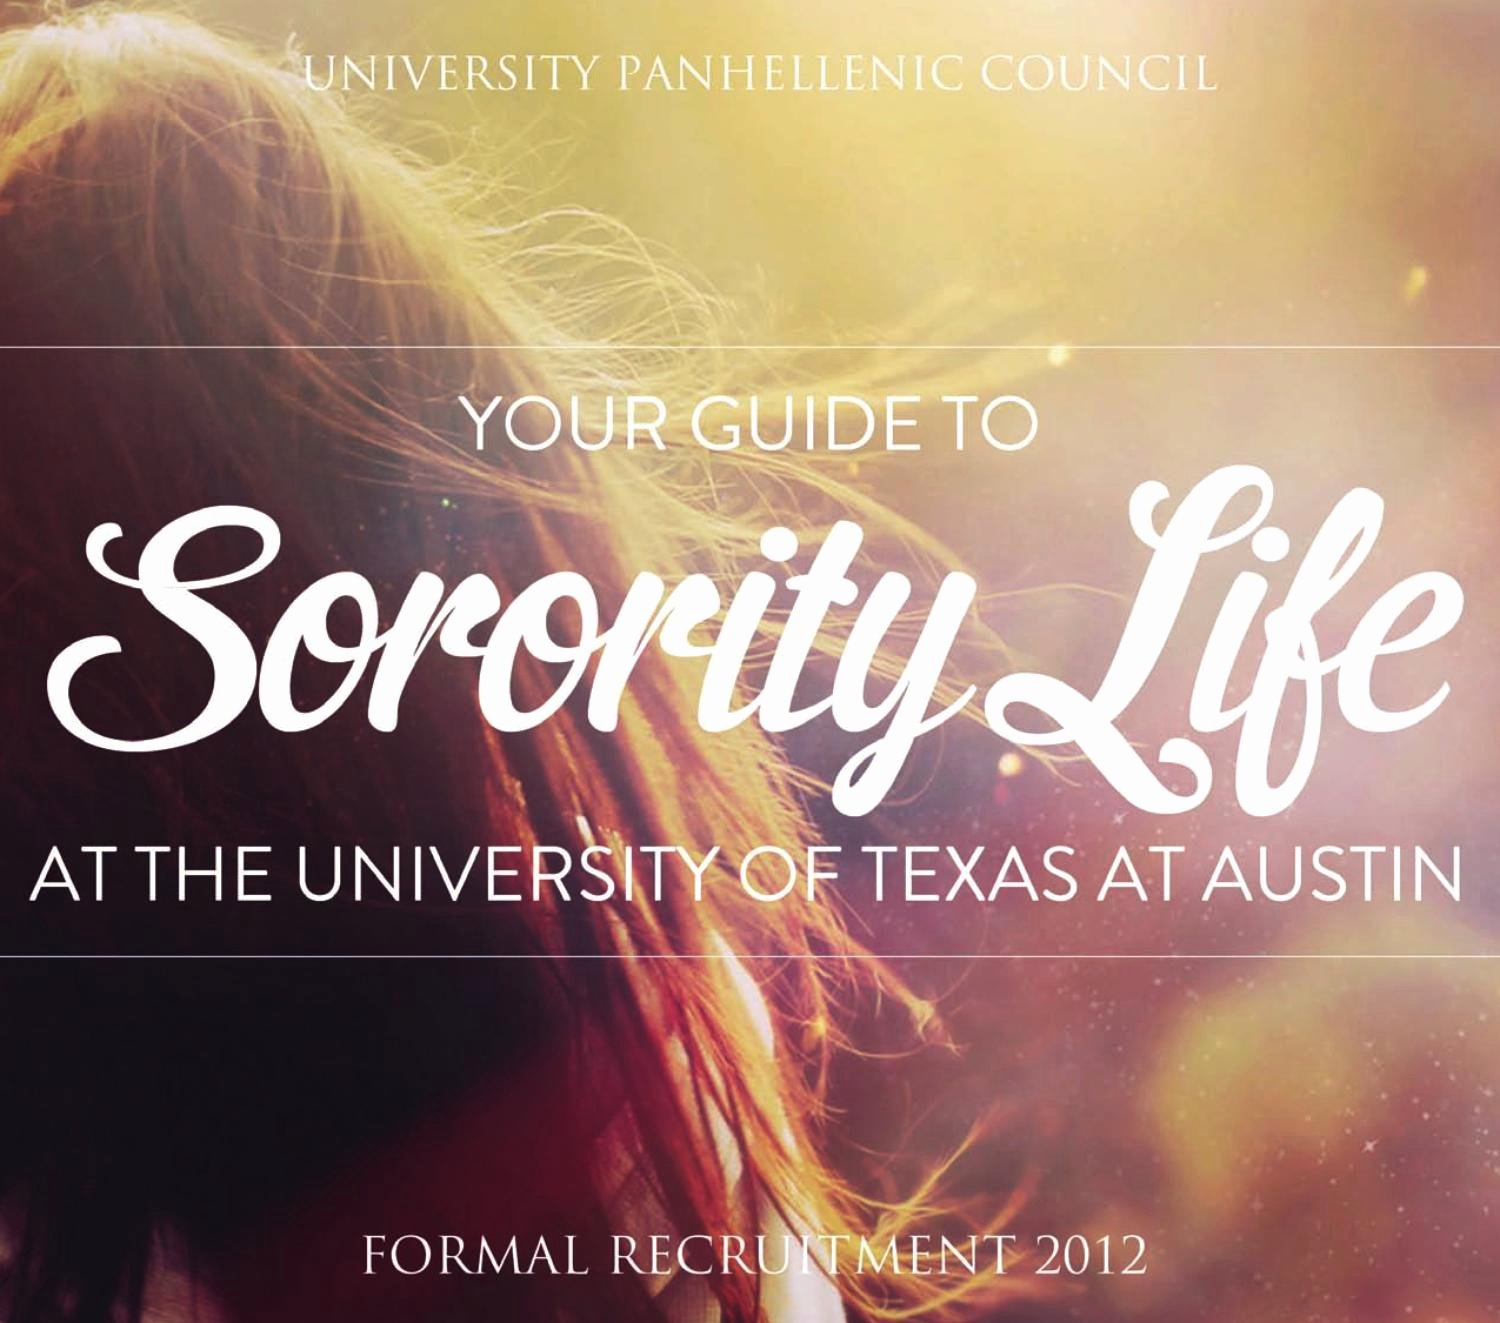 Ut Austin Recommendation Letter Inspirational sorority Life University Of Texas 2012 by Publication